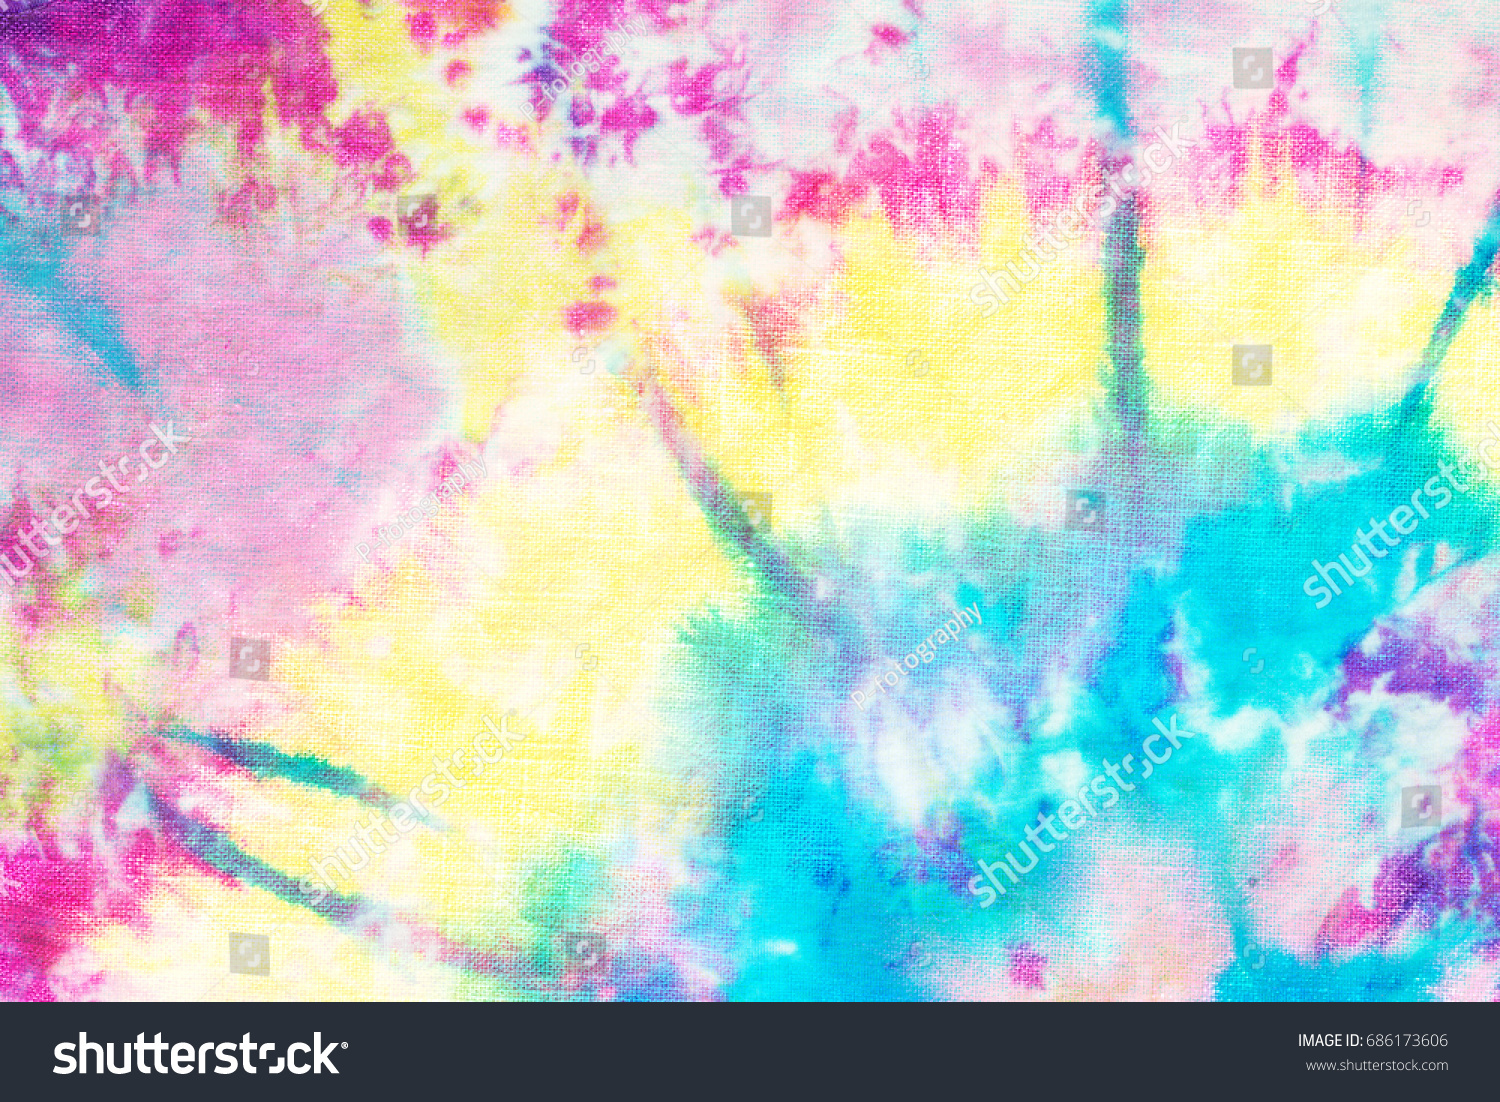 tie dye pattern abstract background. | EZ Canvas